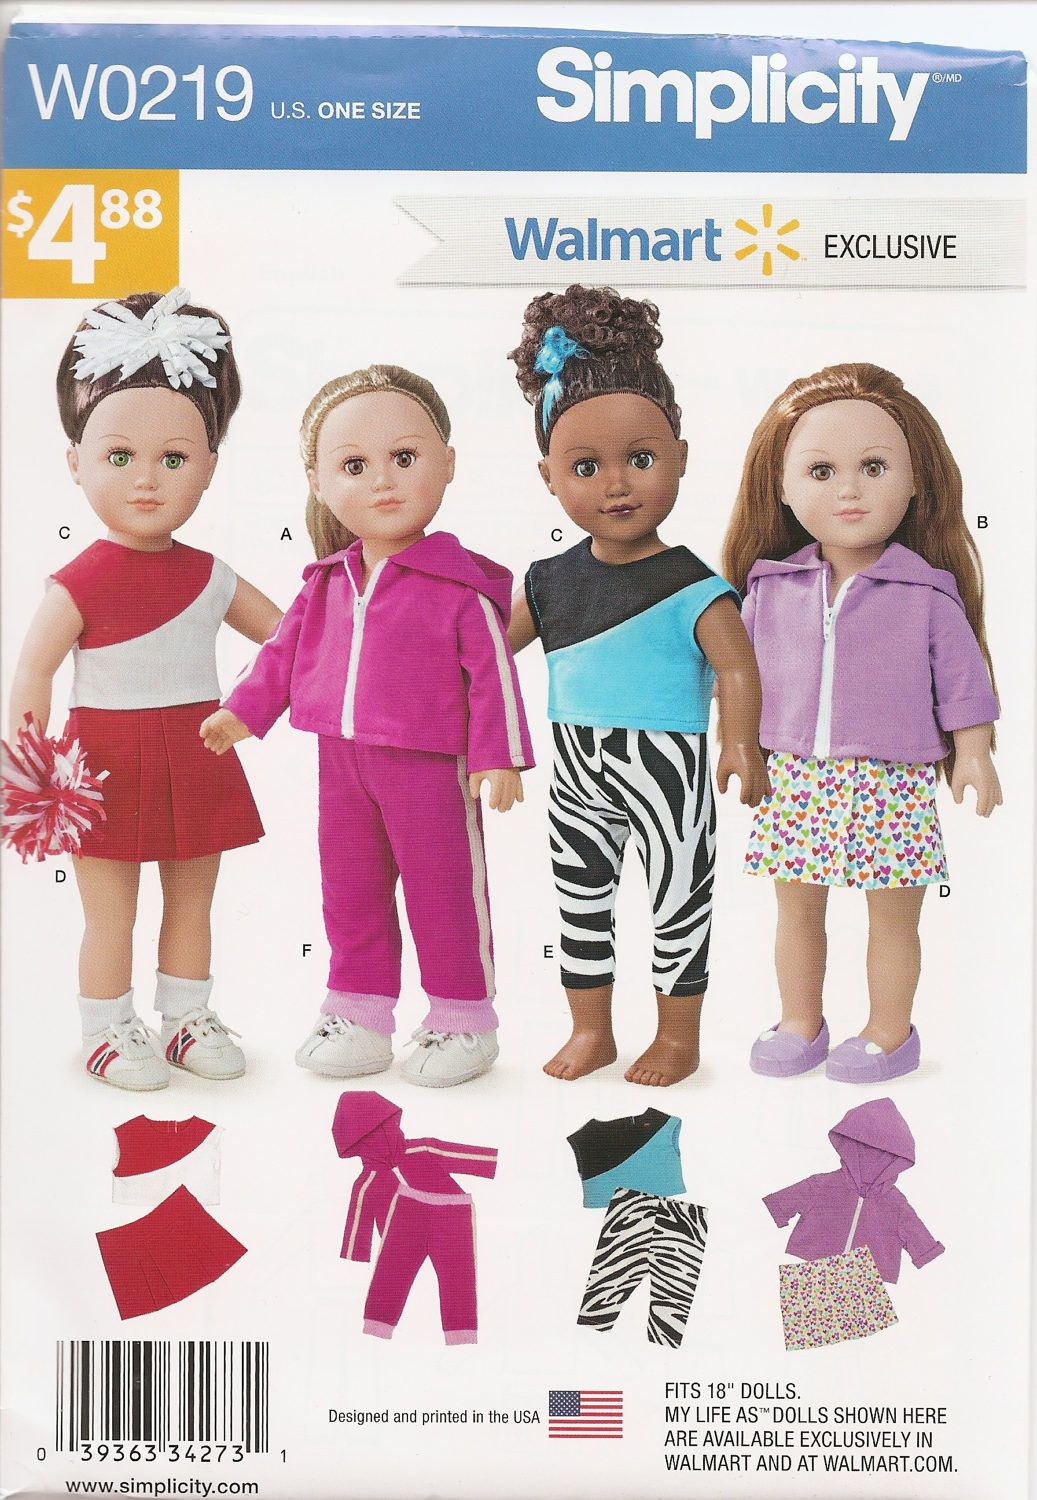 Simplicity sewing pattern 0219 Walmart Exclusive 18\